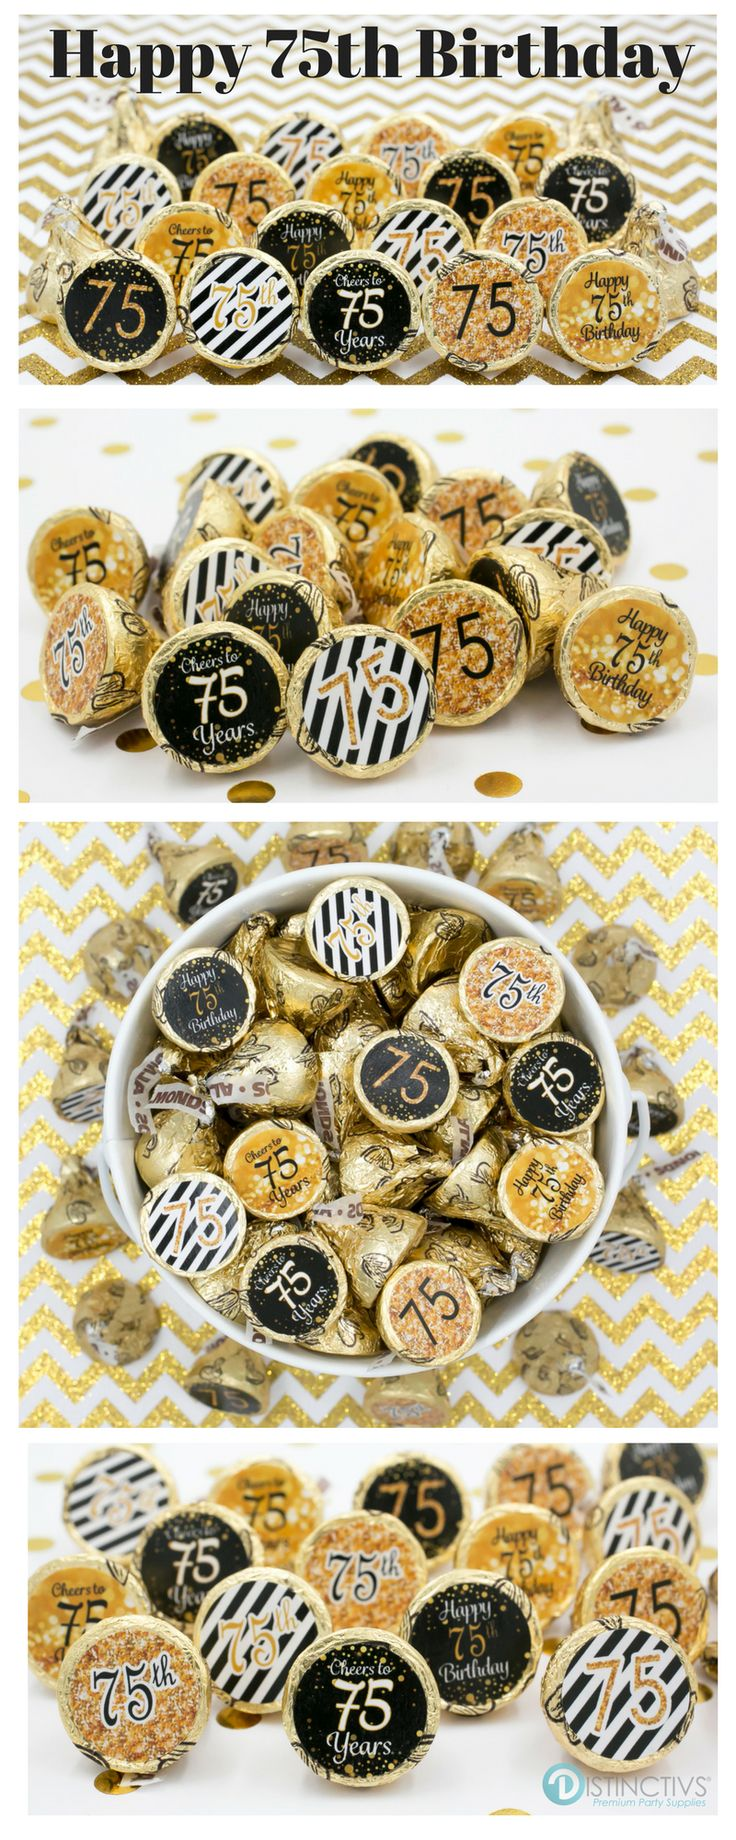 Celebrate this special birthday milestone with these gold and black 75th birthday party favor stickers that will be a sure hit at your party. #blackandgoldbirthday #75thbirthdayidea #75thbirthday